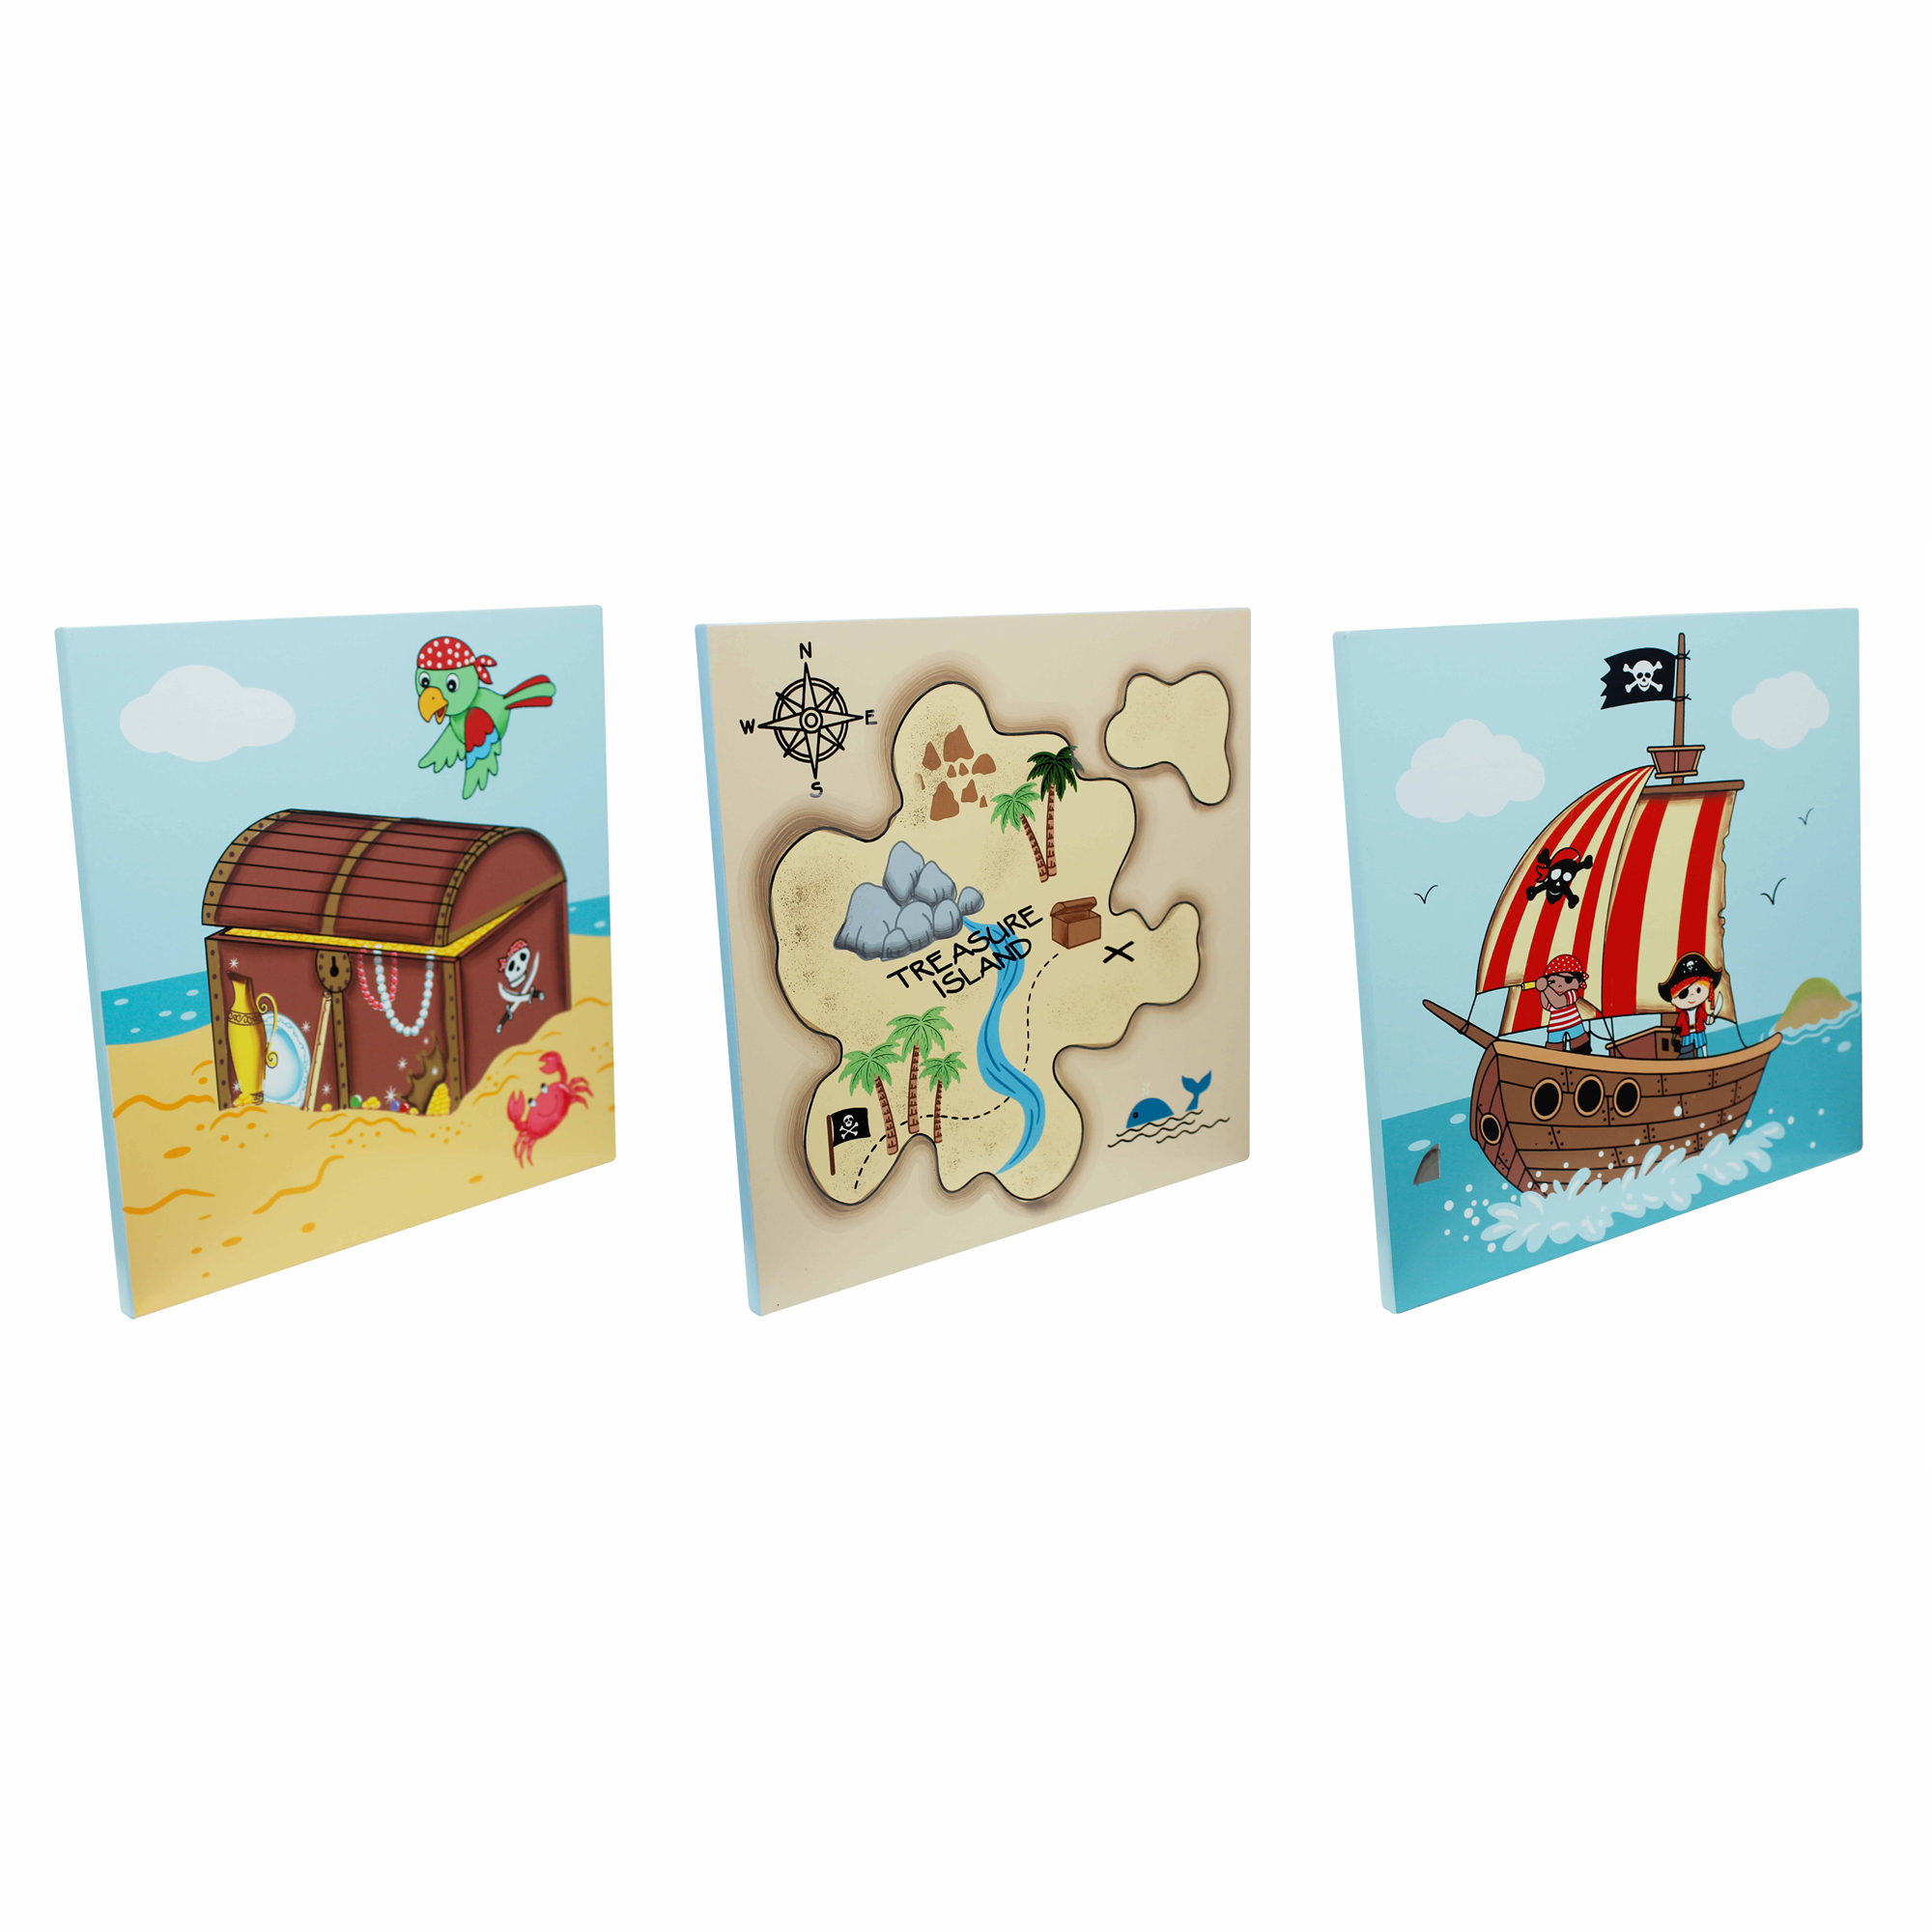 Pirate Wall Art set x 3 ~ by Fantasy Fields ~ Teamson